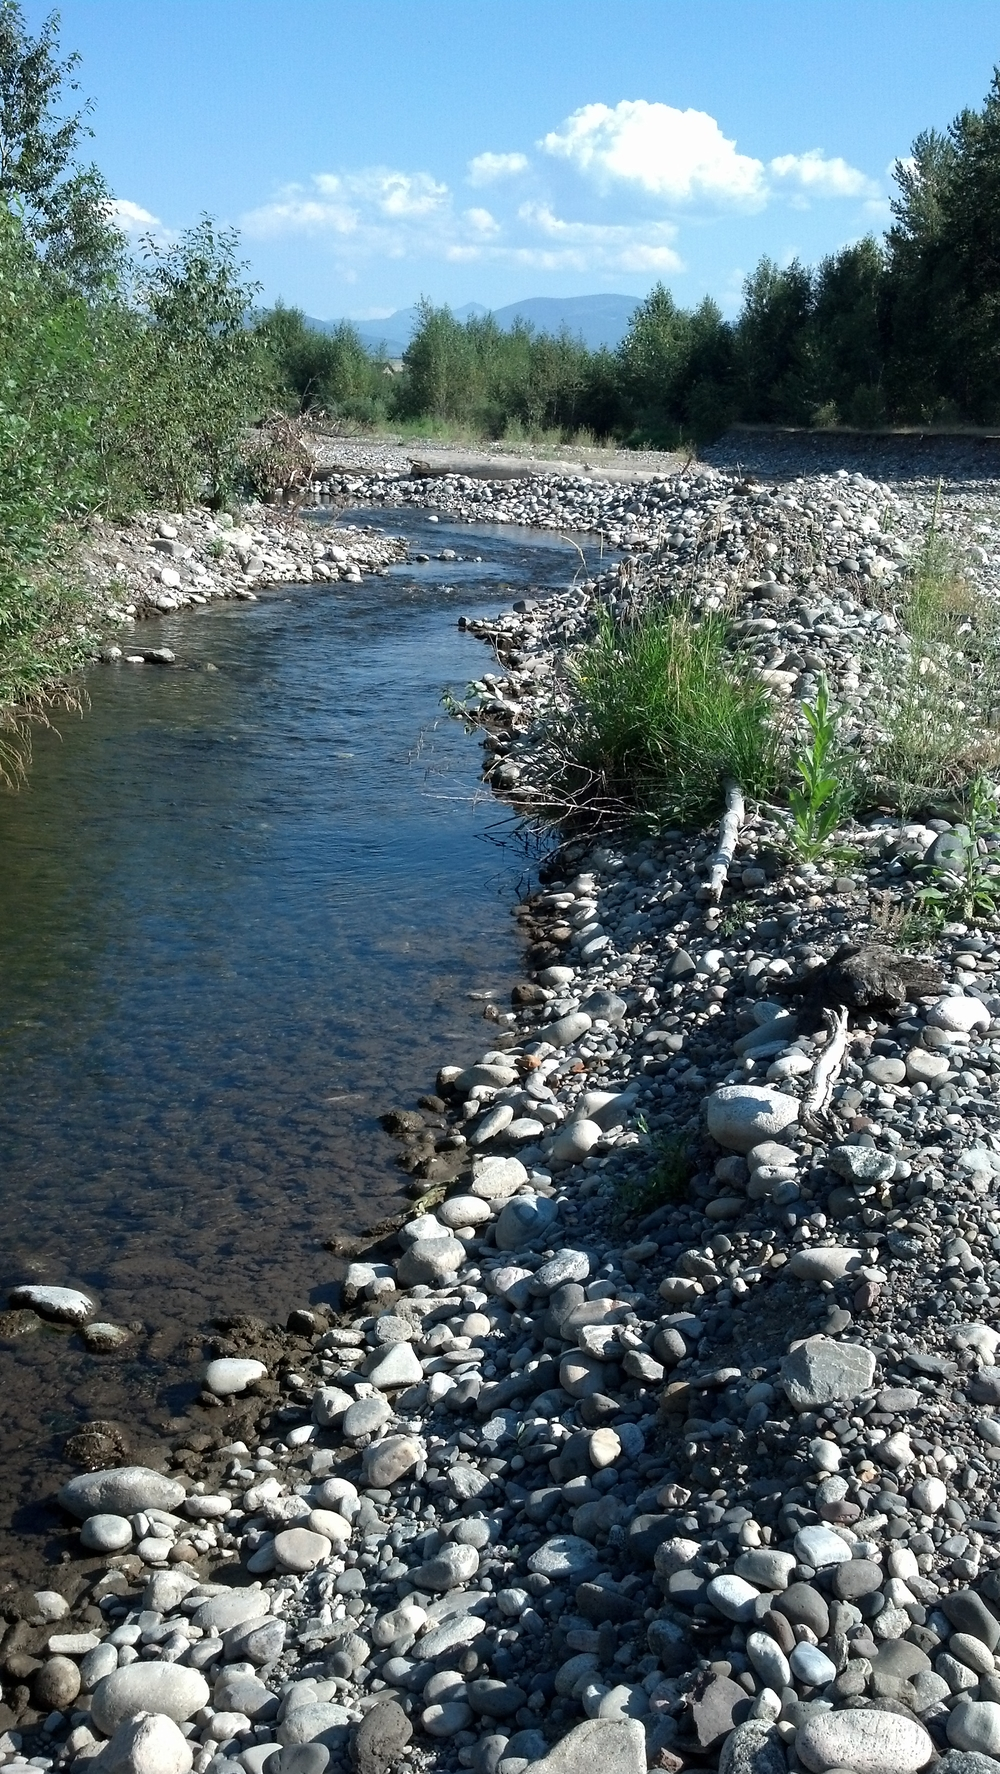 West Gallatin River, Bozeman, MT